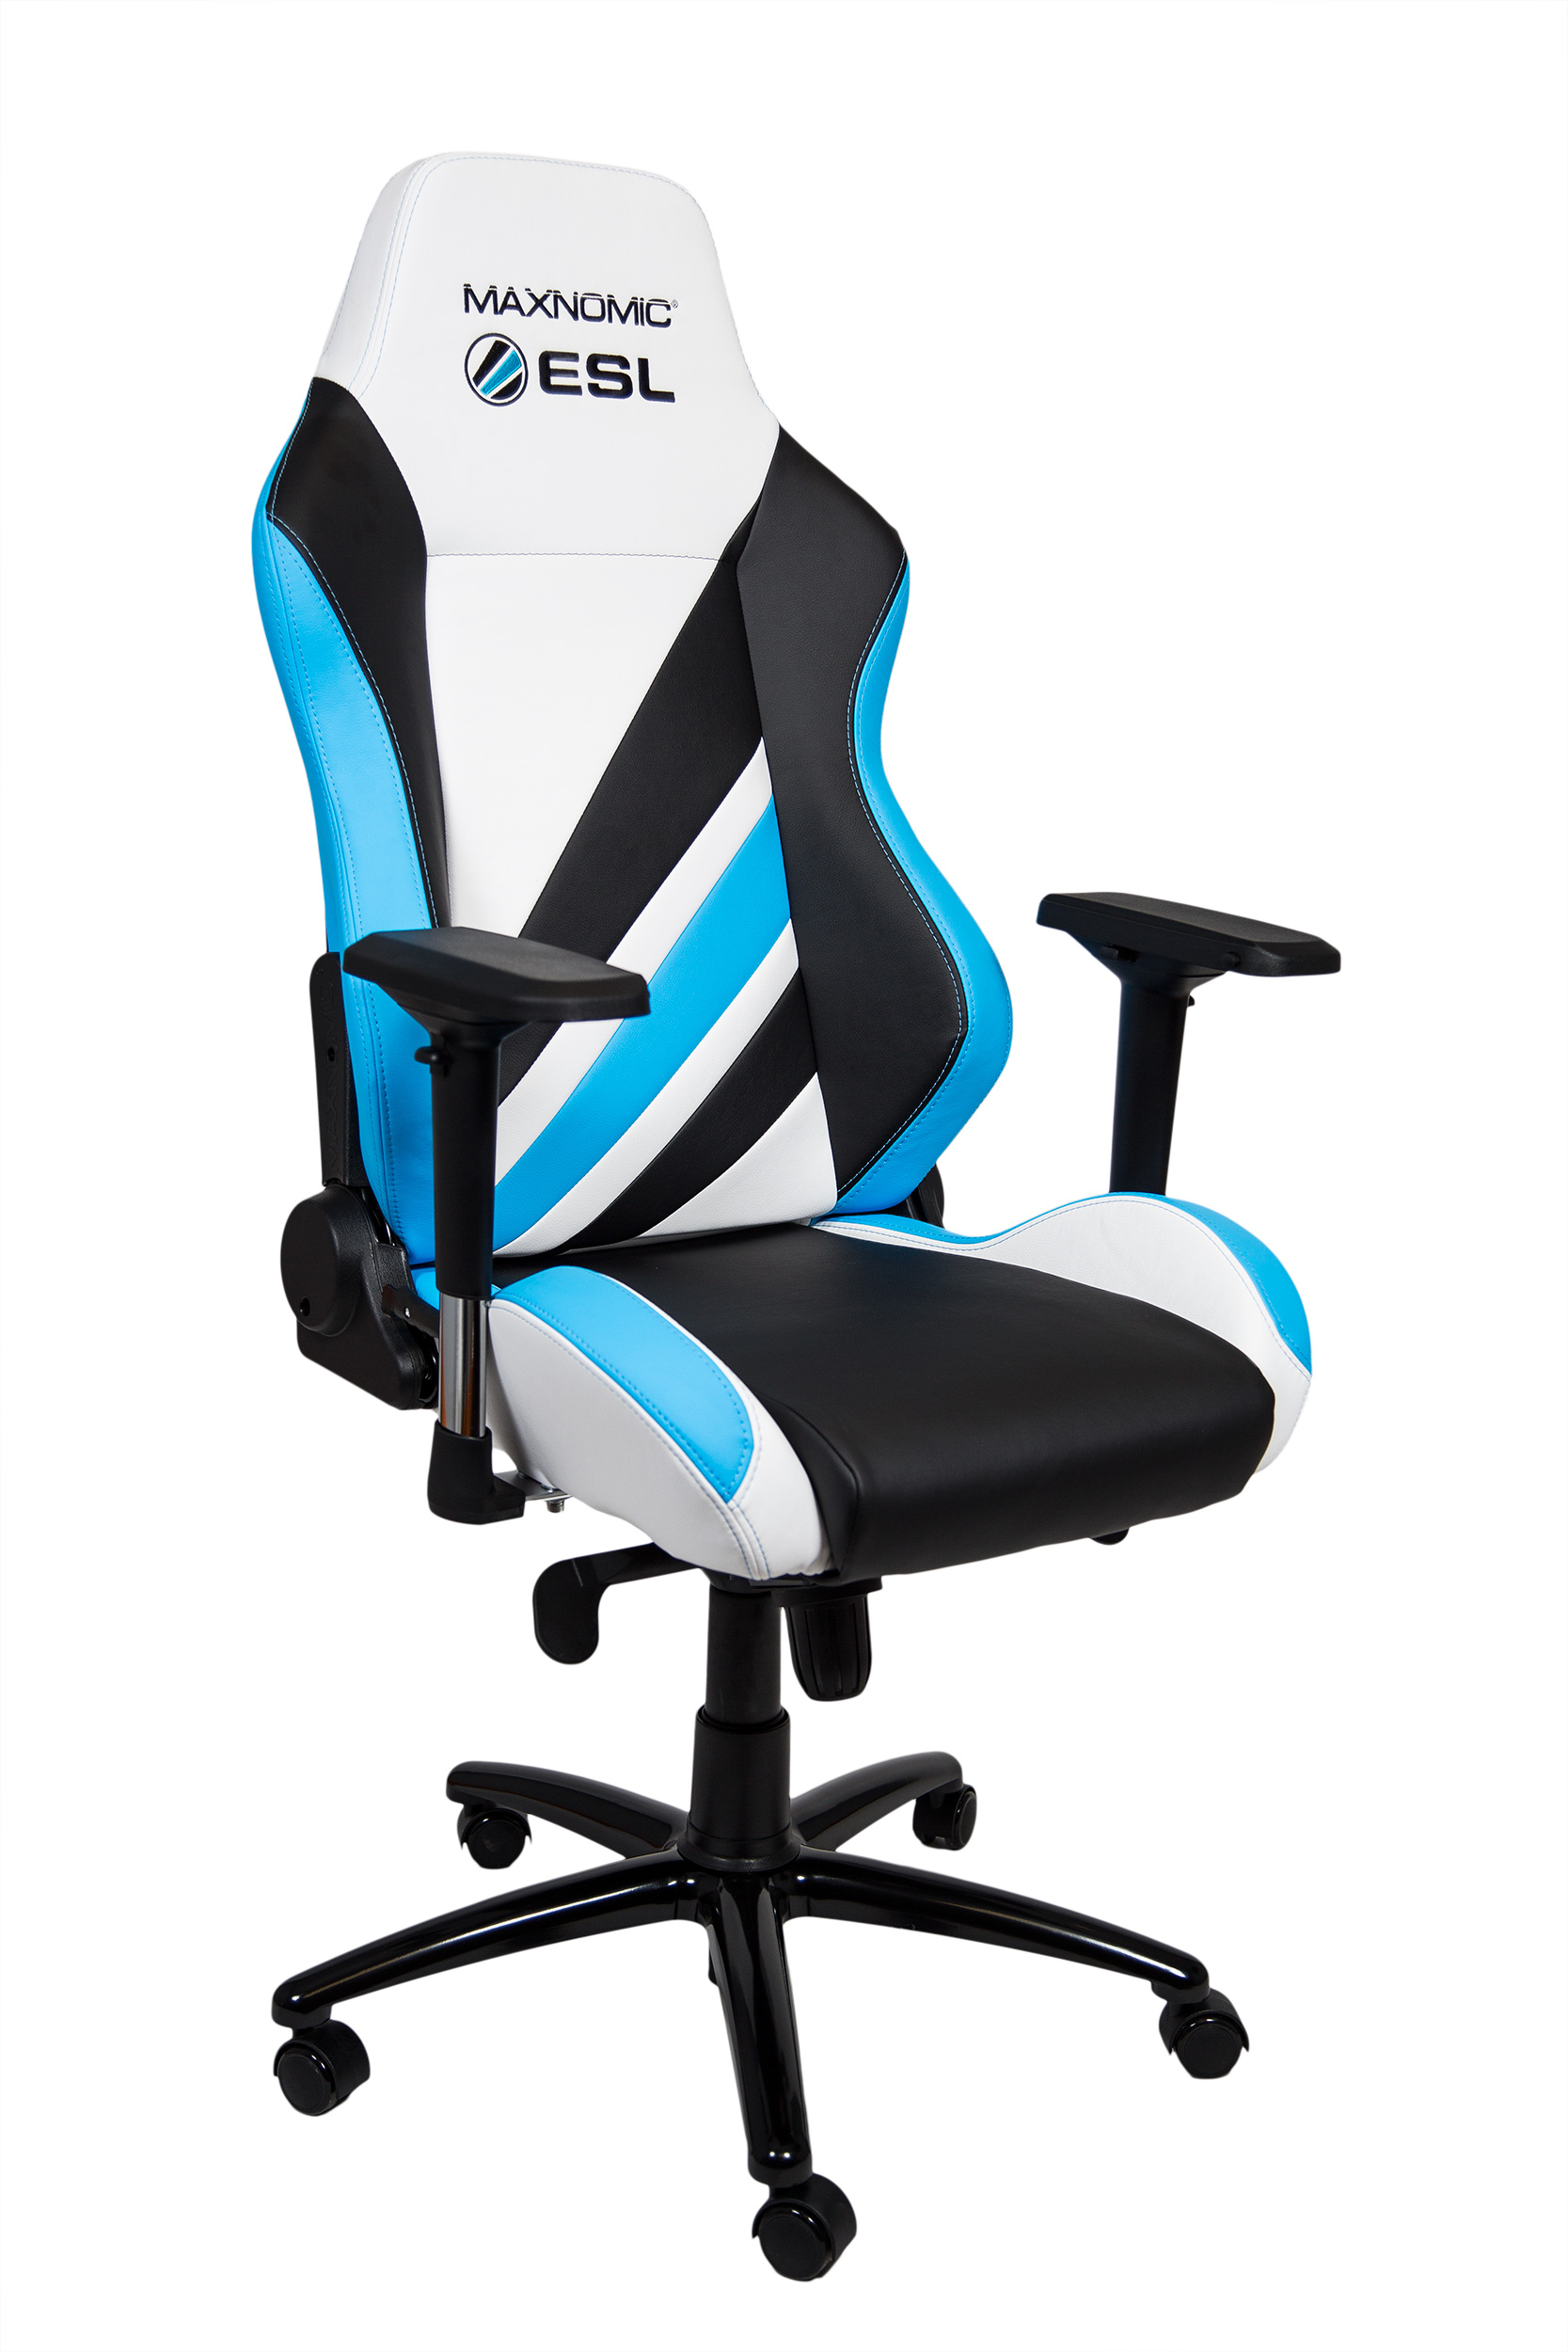 Most Comfortable Chair For Gaming Take Your Seat For The Next Generation Of The Maxnomic Esl